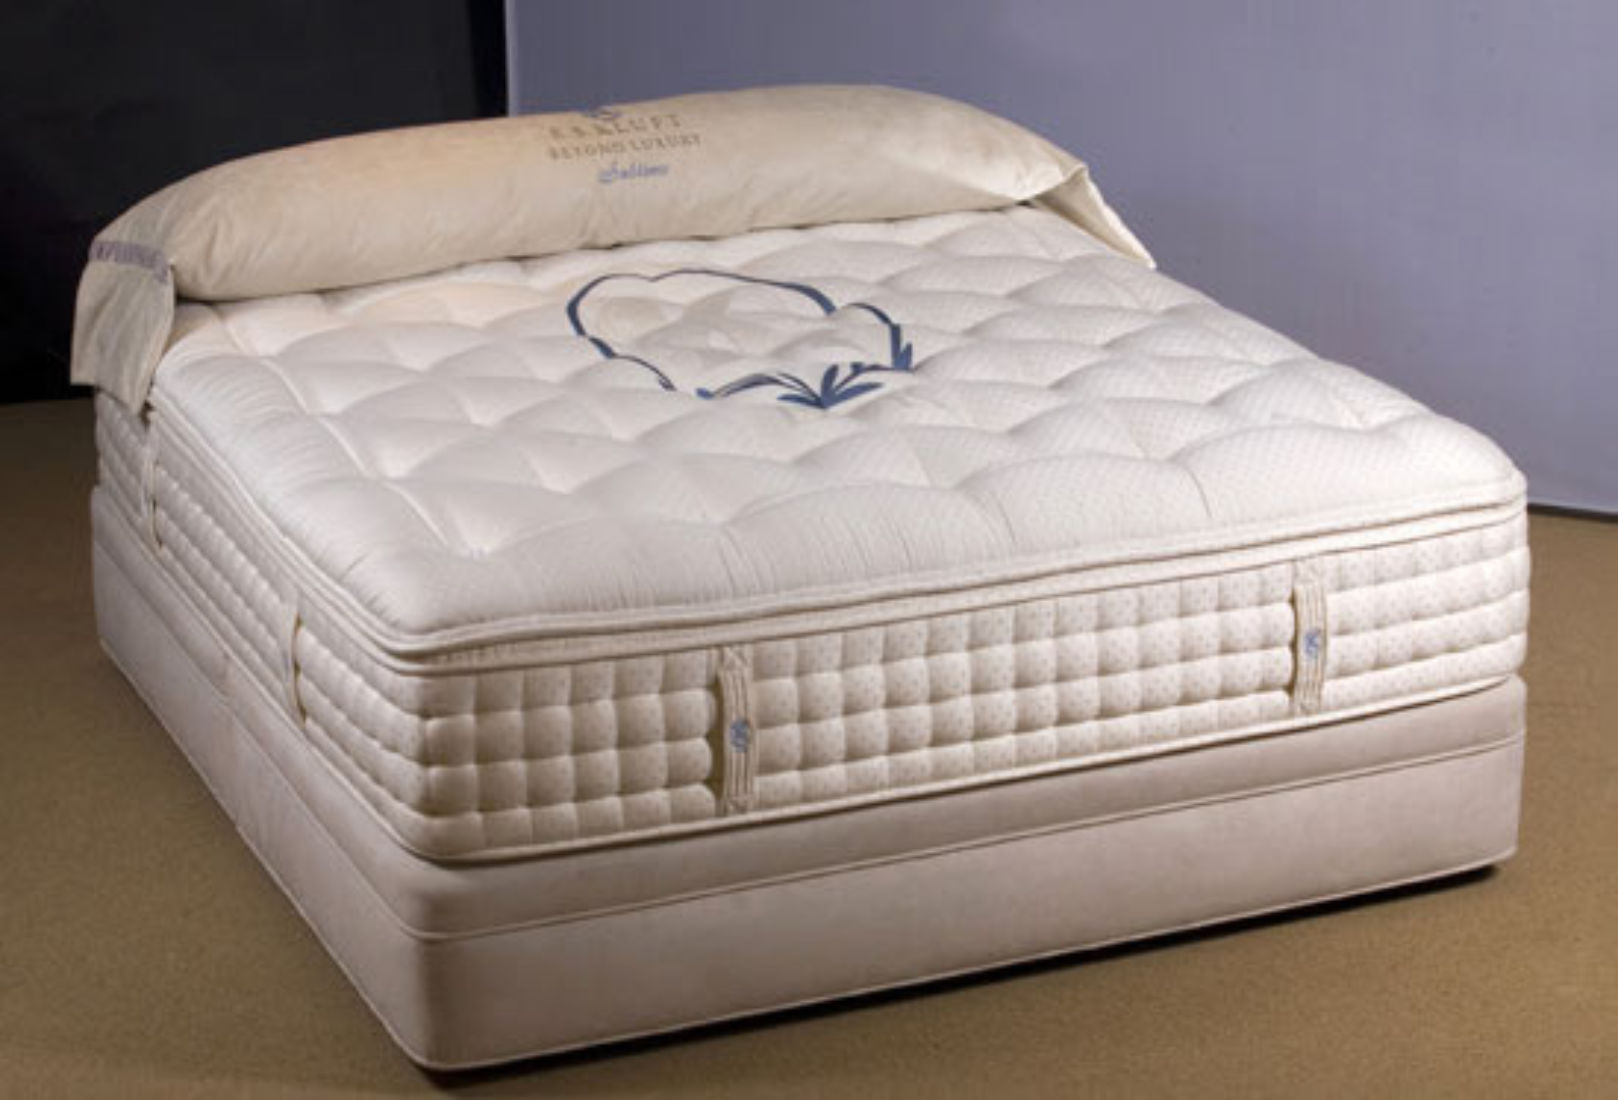 The World S Most Expensive Mattress Childrens Mattresses